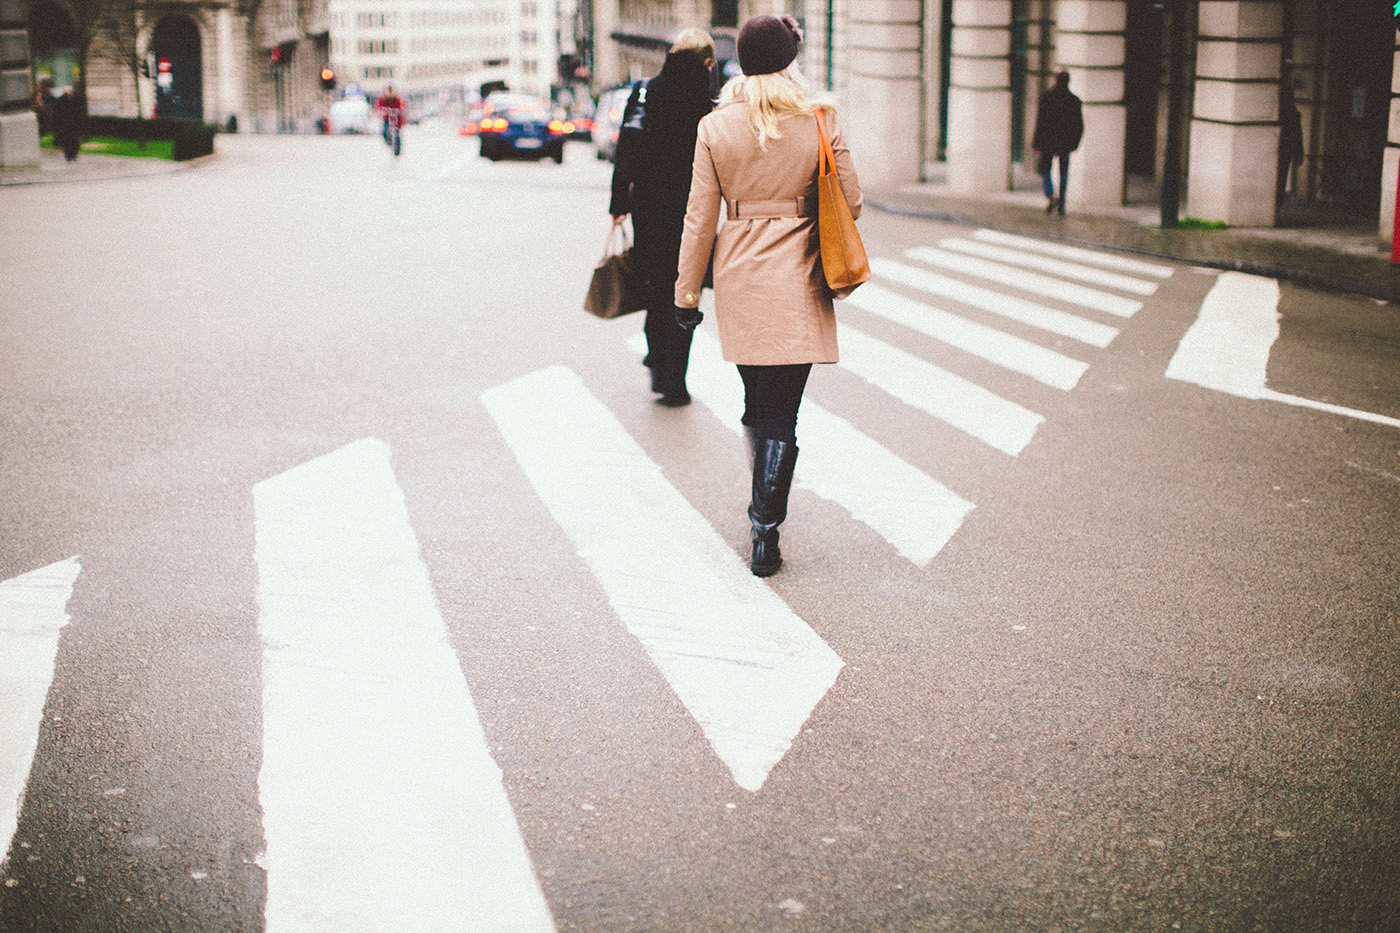 Pedestrian Accidents on the Rise in Houston Featured Image